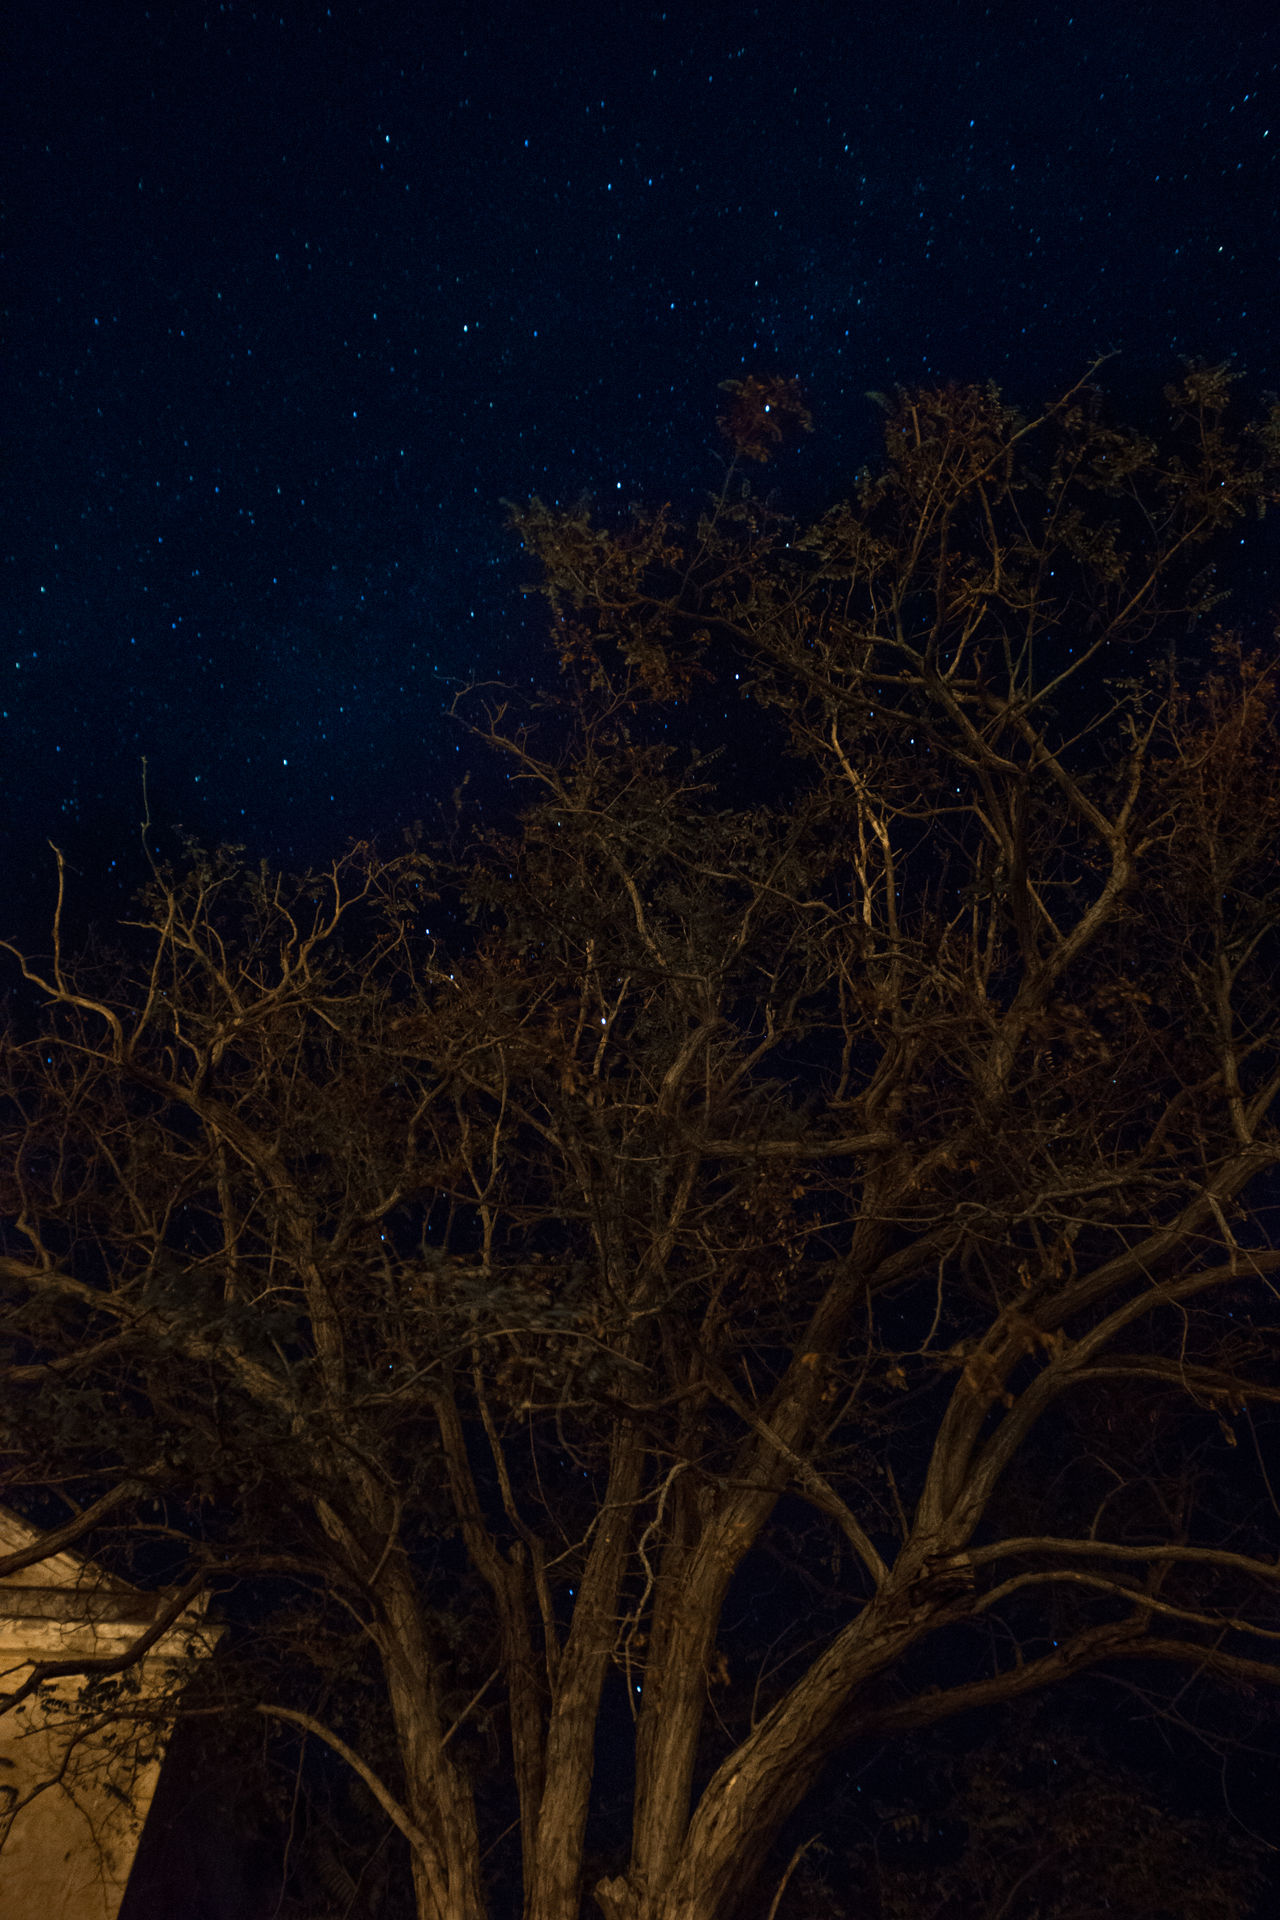 Astrology Sign Astronomy Beauty In Nature Constellation Galaxy Growth Idyllic Low Angle View Nature Night No People Outdoors Scenics Science Sky Space And Astronomy Star - Space Star Field Tranquility Tree Vertical